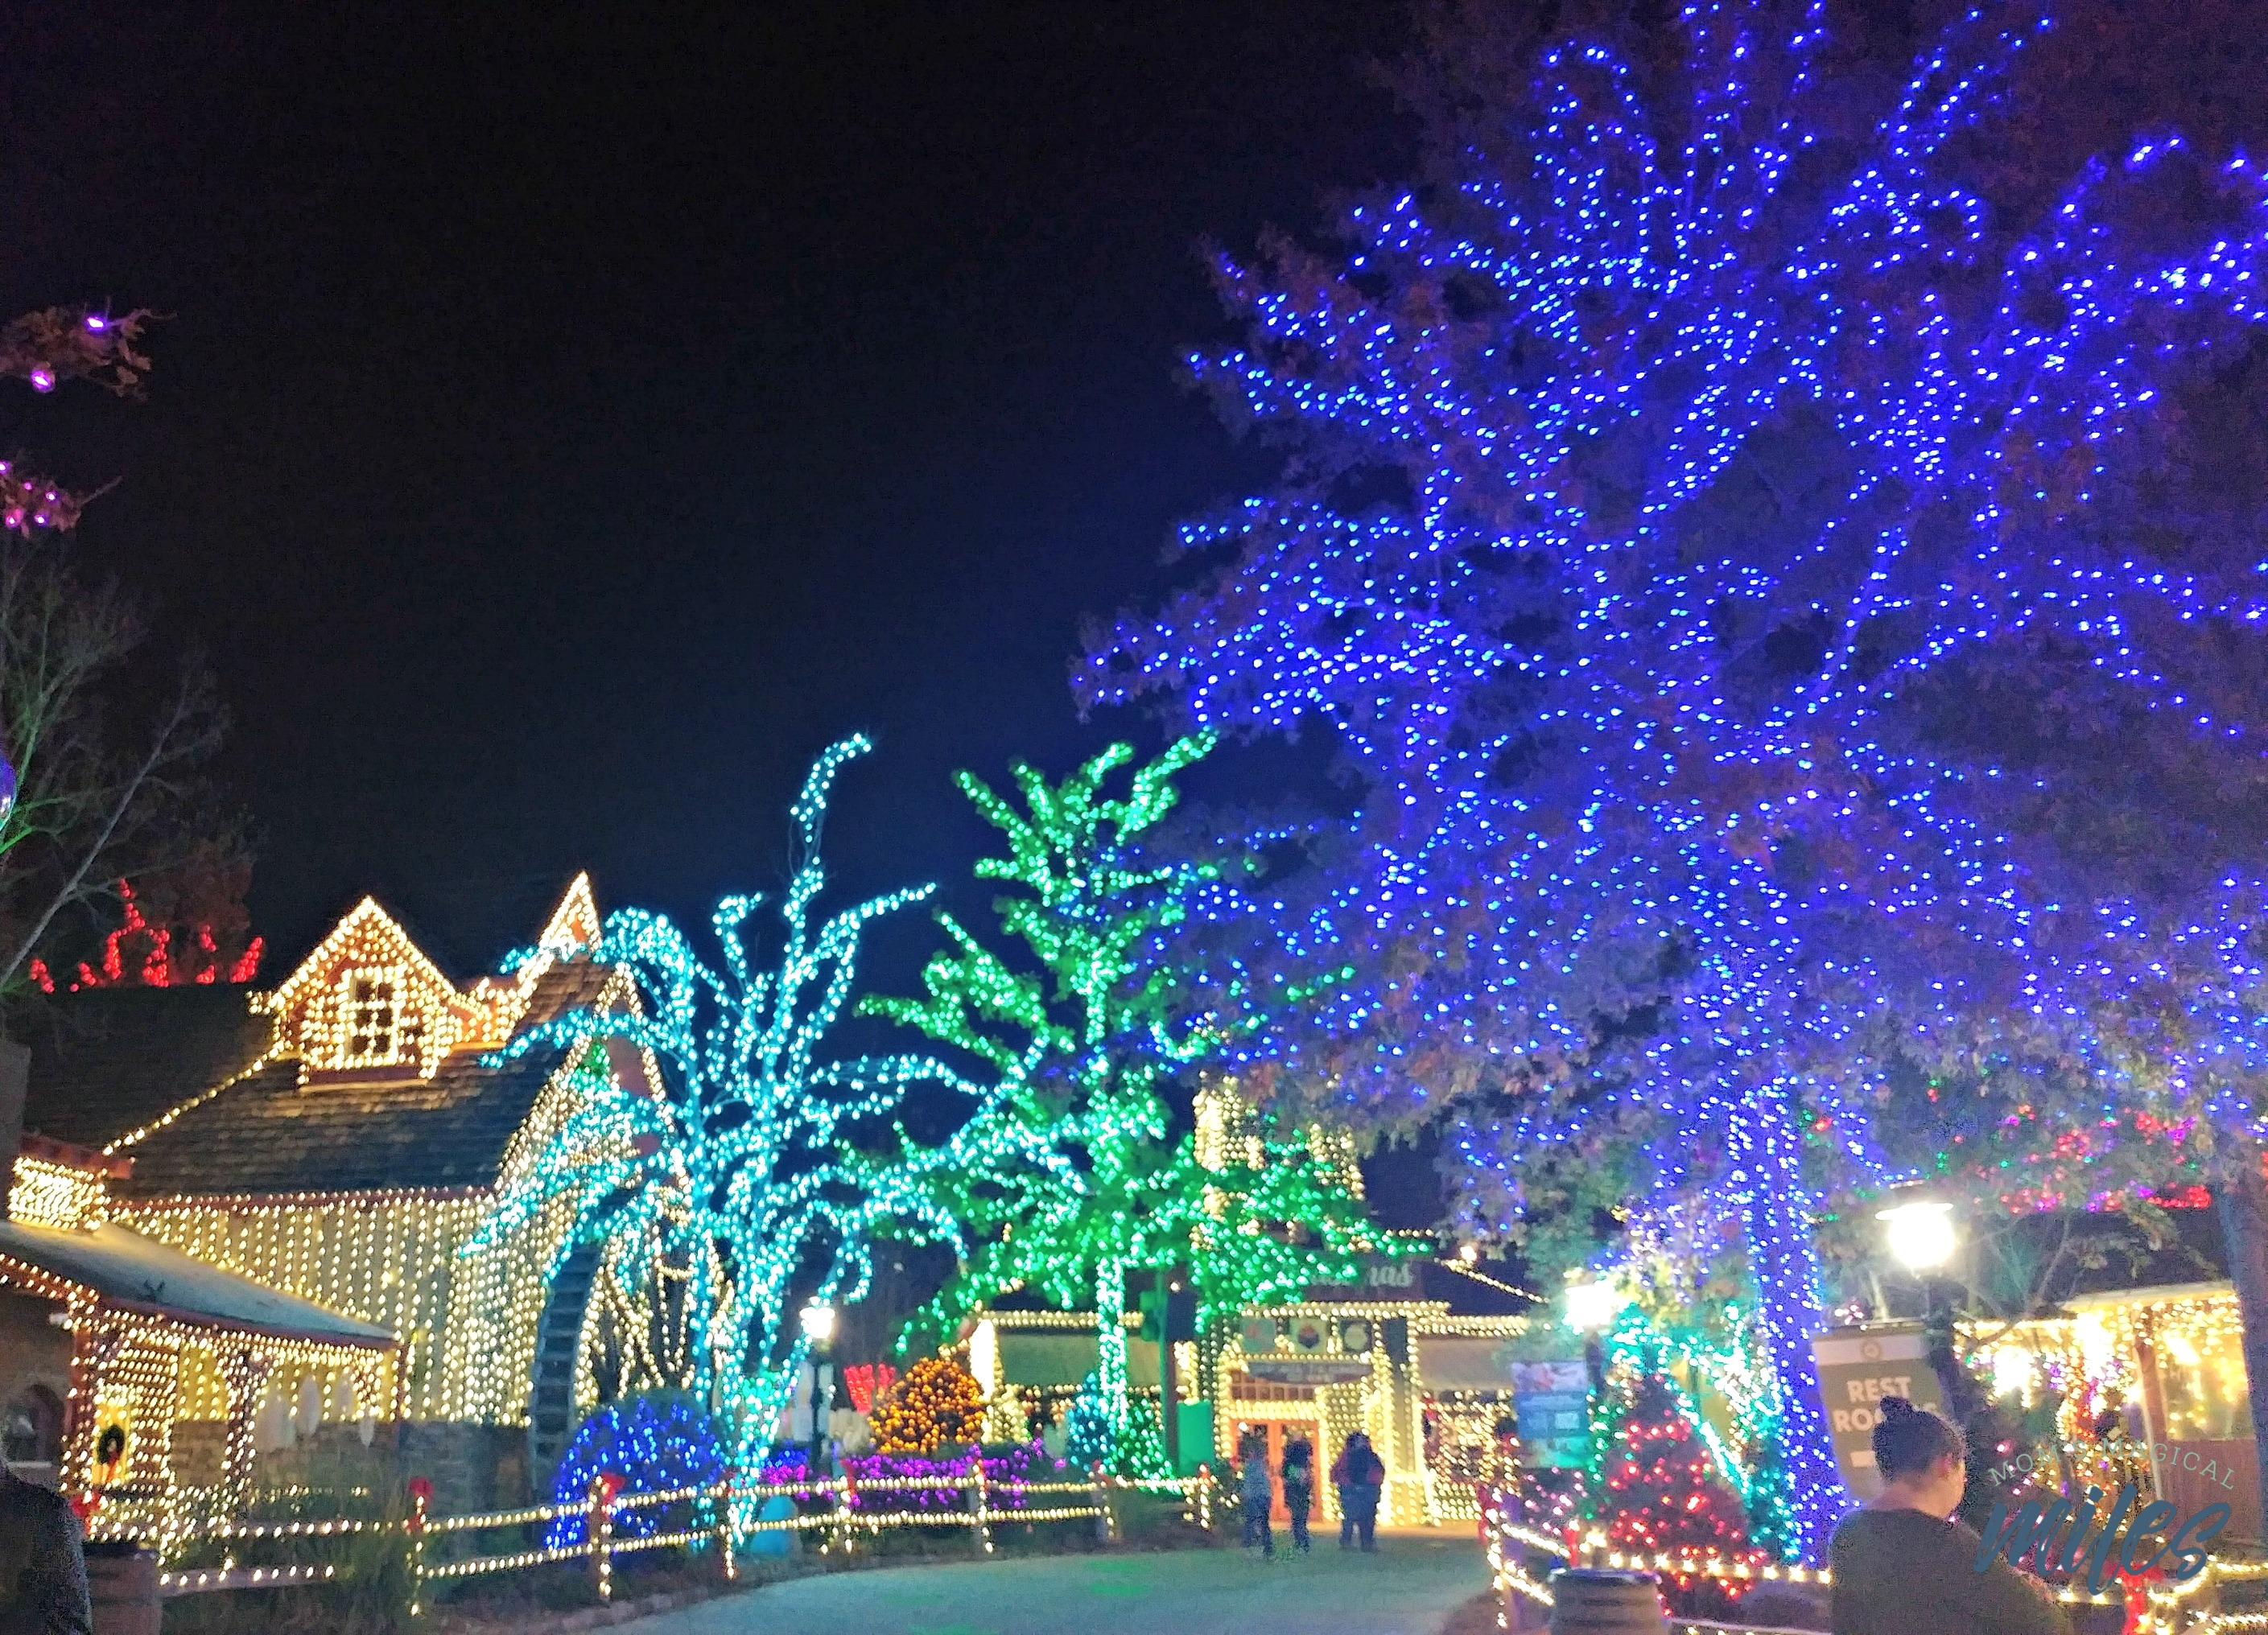 The Crossroads area of Stone Mountain Park comes alive with thousands of lights during Stone Mountain Christmas!